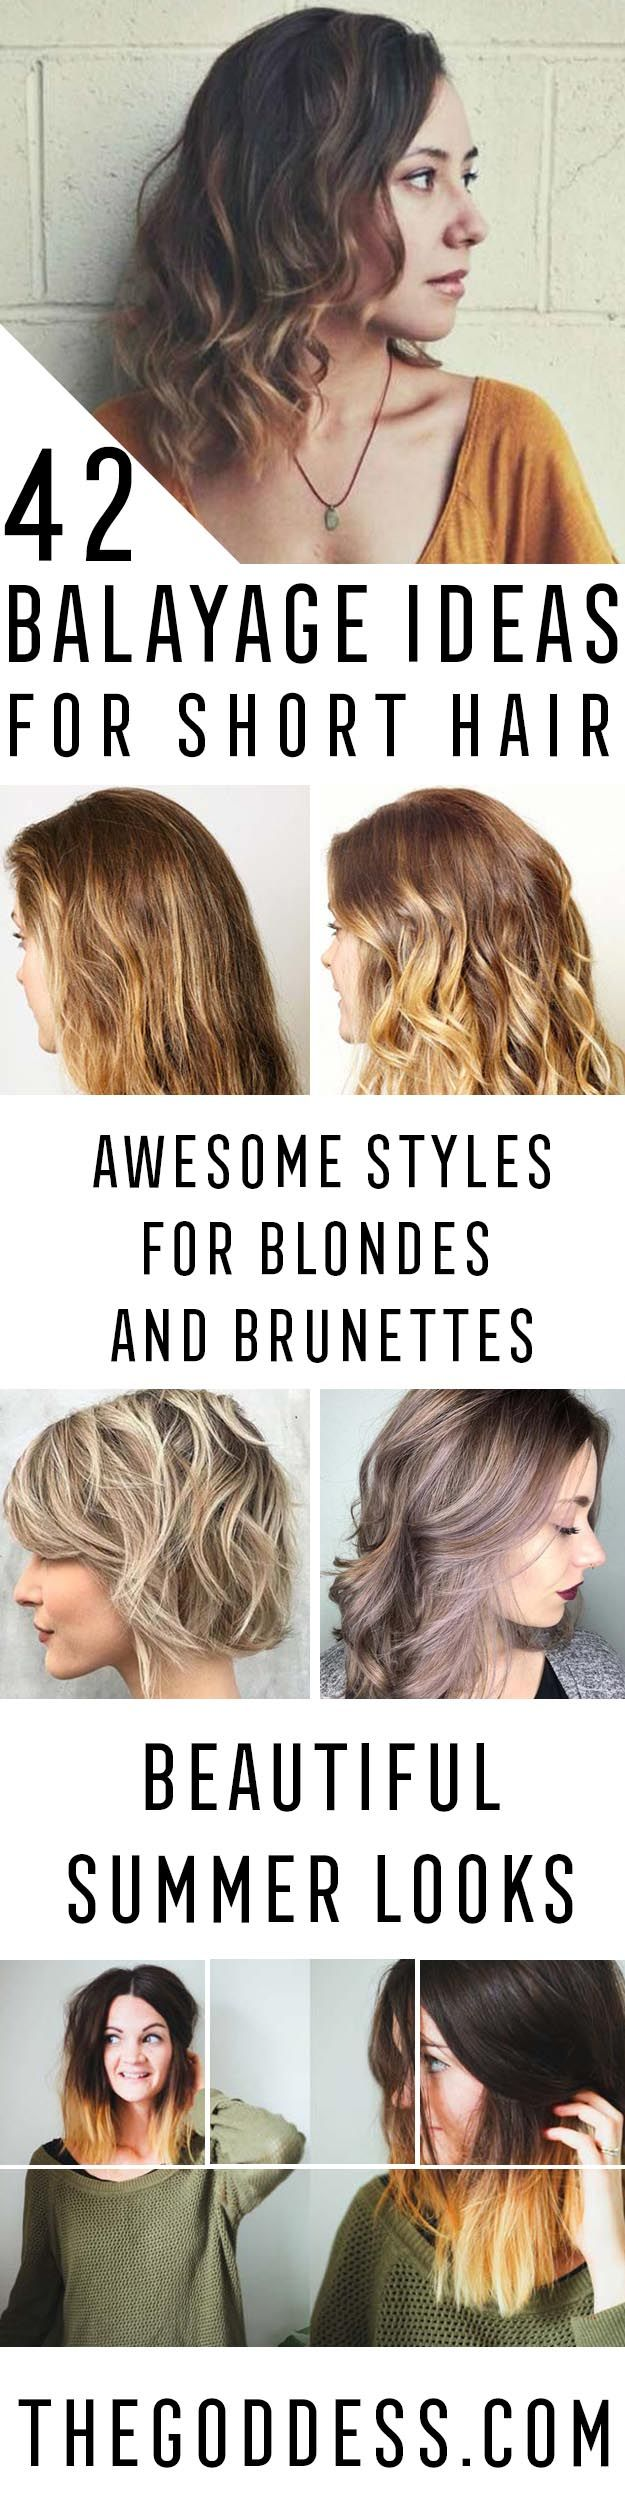 Balayage Ideas for Short Hair - Tips, Tricks, And Ideas for Balayage Hairstyles You Can Do At Home And For Short And Very Short Hair. DIY Balayage Hair Styles That Cost Way Less. Try The Pixie Balayage Hairdo For Blonde Or Dark Brunette Hair. Use Caramel, Red, Brown, And Black Colors With Your Undercut And Balayage Haircut. Get Beautiful Looks With Purple, Grey, Honey, And Burgundy. Try An Ombre With Bangs For Your Medium Length Hair Or Your Super Short Hair…